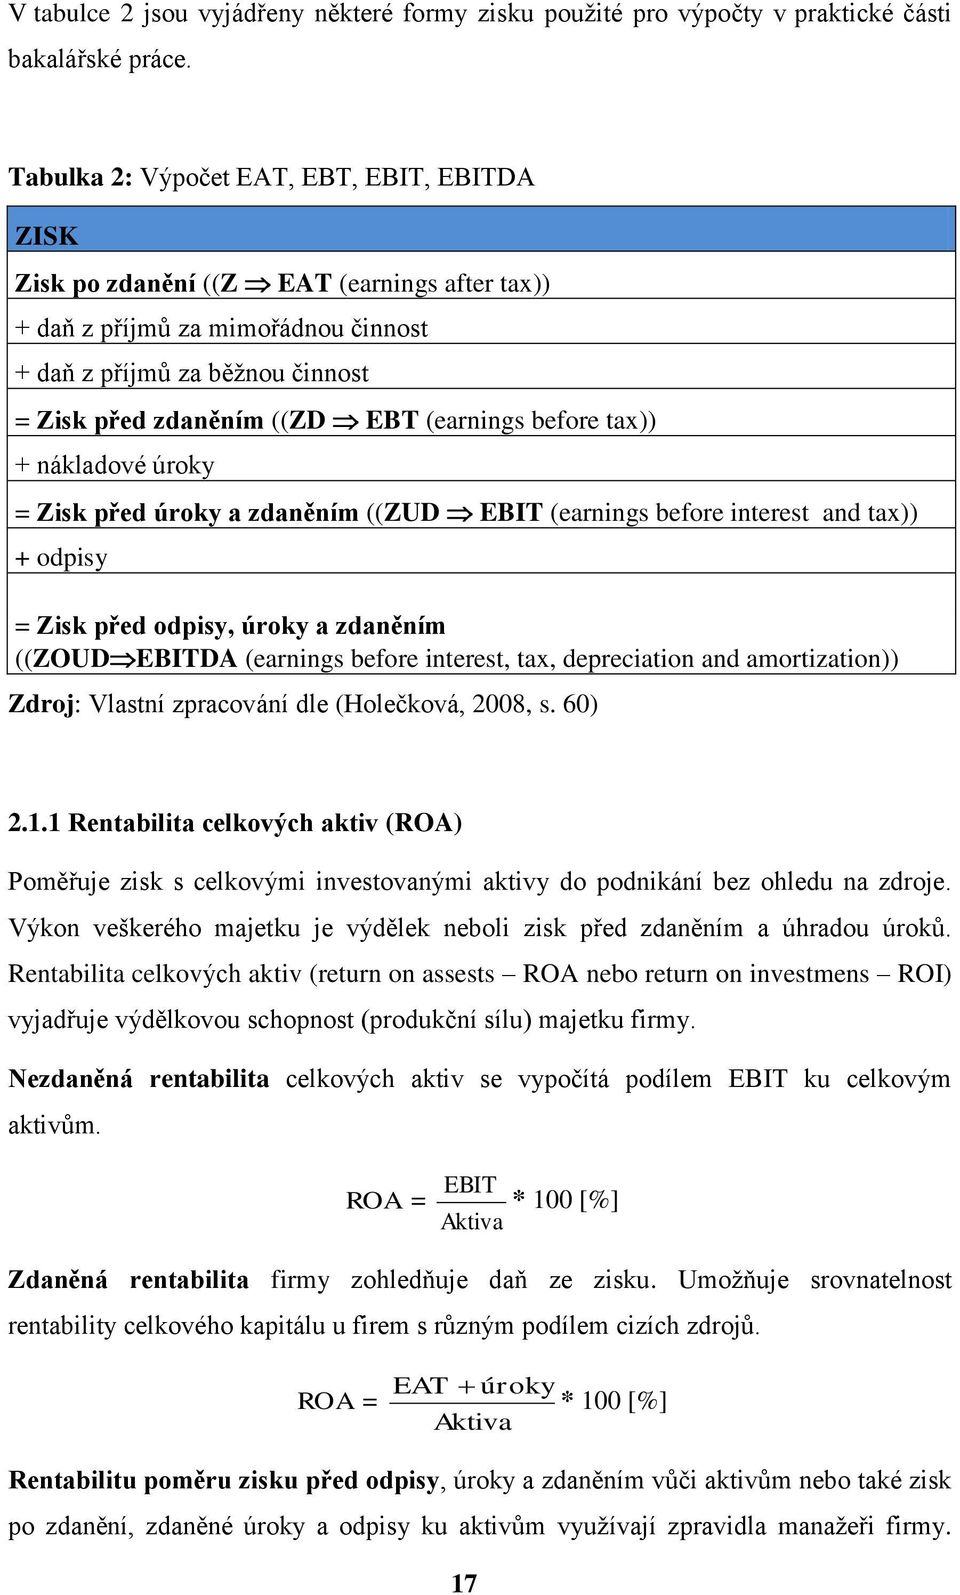 (earnings before tax)) + nákladové úroky = Zisk před úroky a zdaněním ((ZUD EBIT (earnings before interest and tax)) + odpisy = Zisk před odpisy, úroky a zdaněním ((ZOUD EBITDA (earnings before